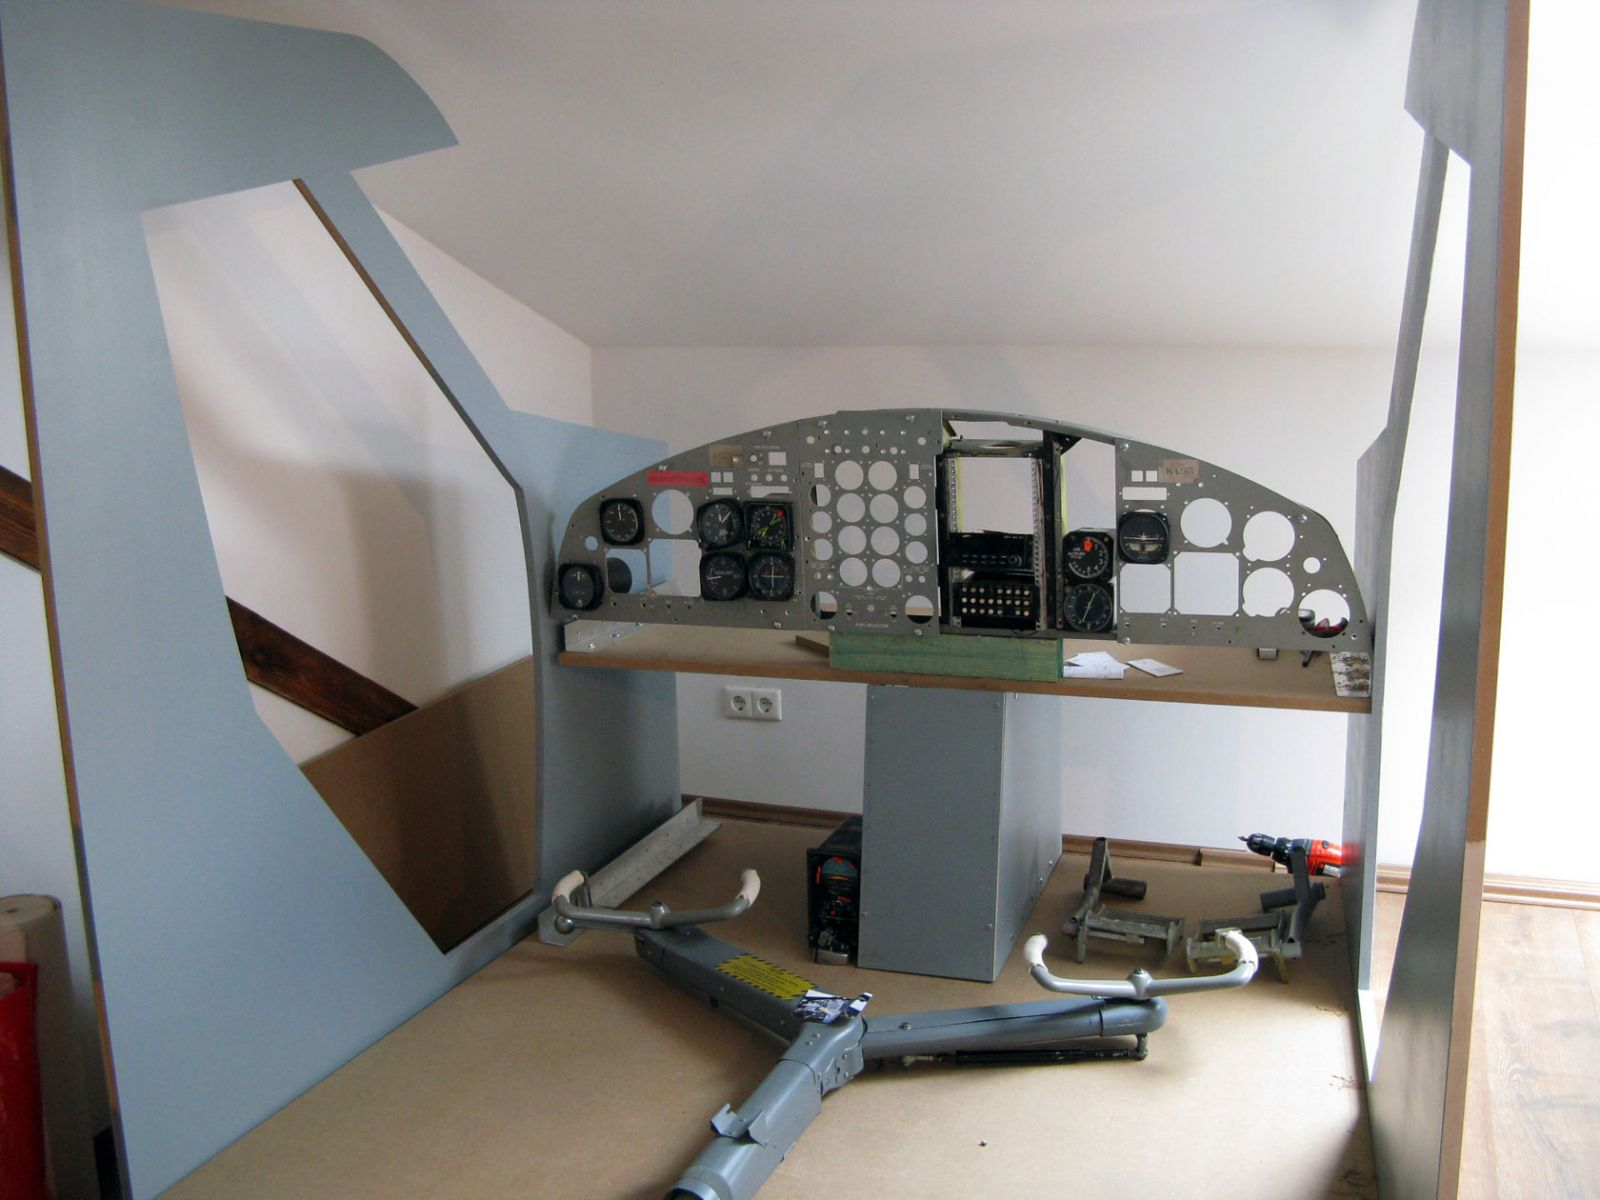 The shell of the Twin otter II cockpit (including the original yoke).